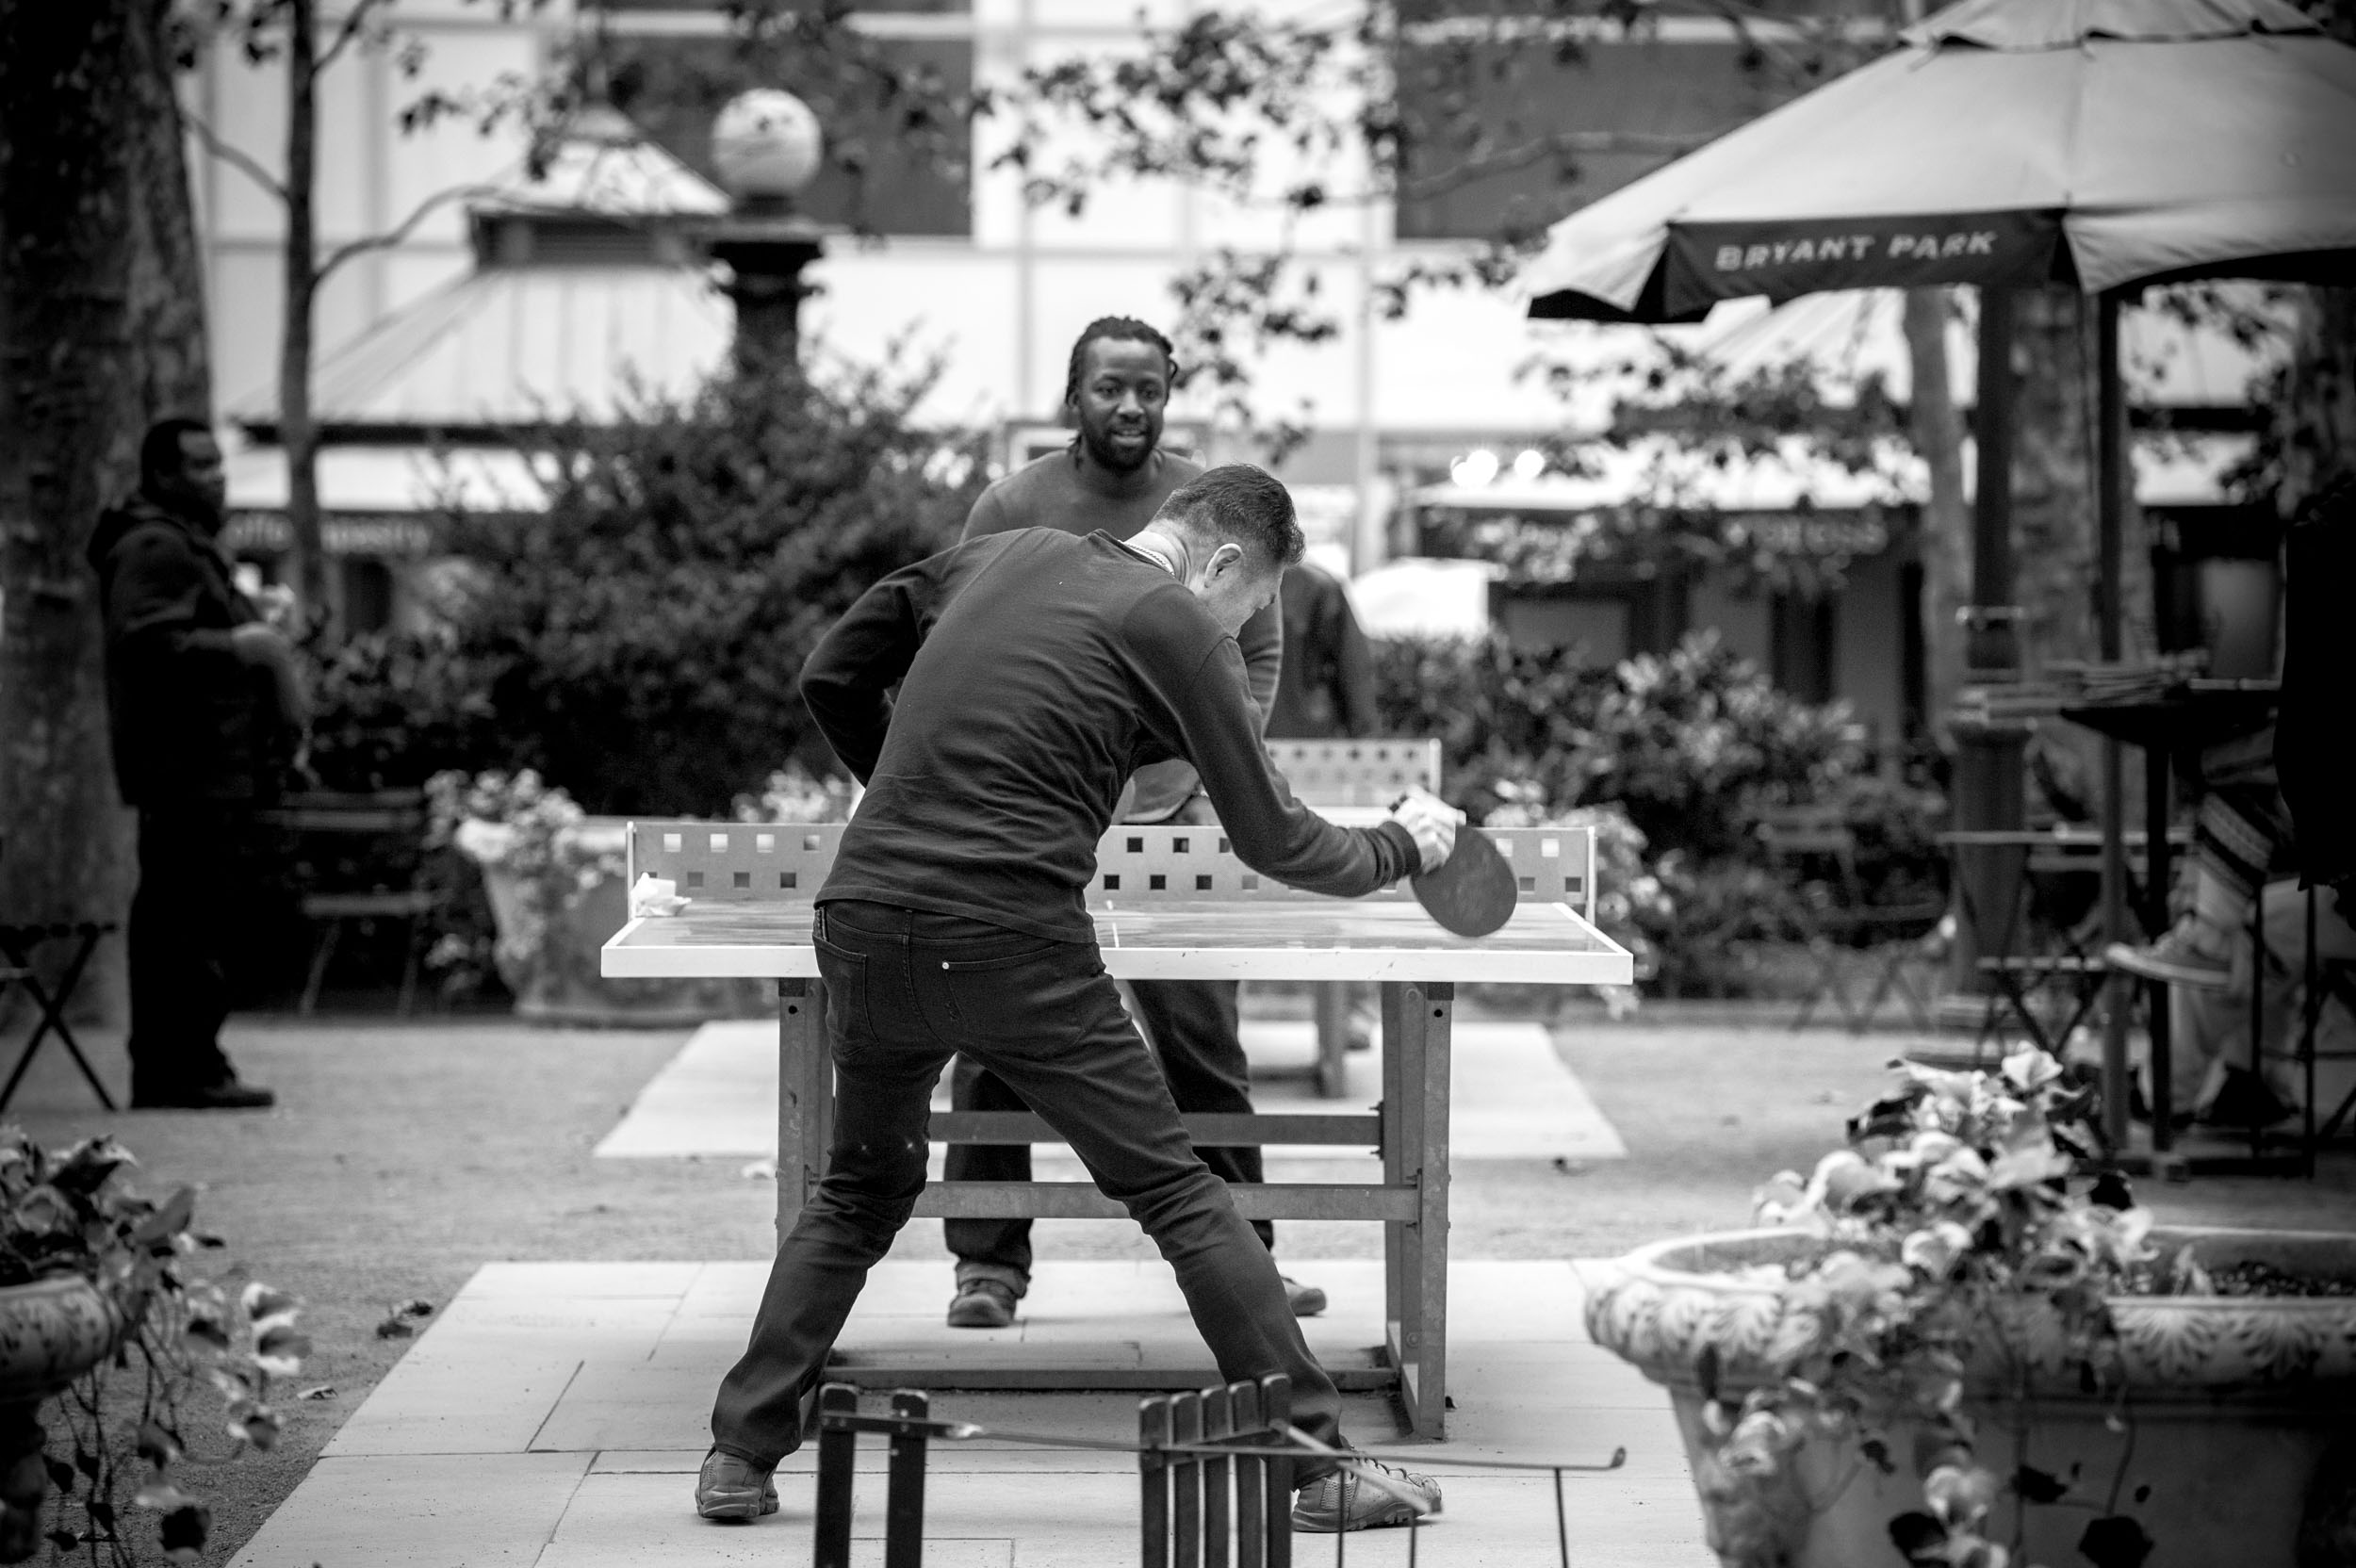 pam_korman_photography-ping-pong_diplomacy-bryant_park_new_york_city-12.jpg